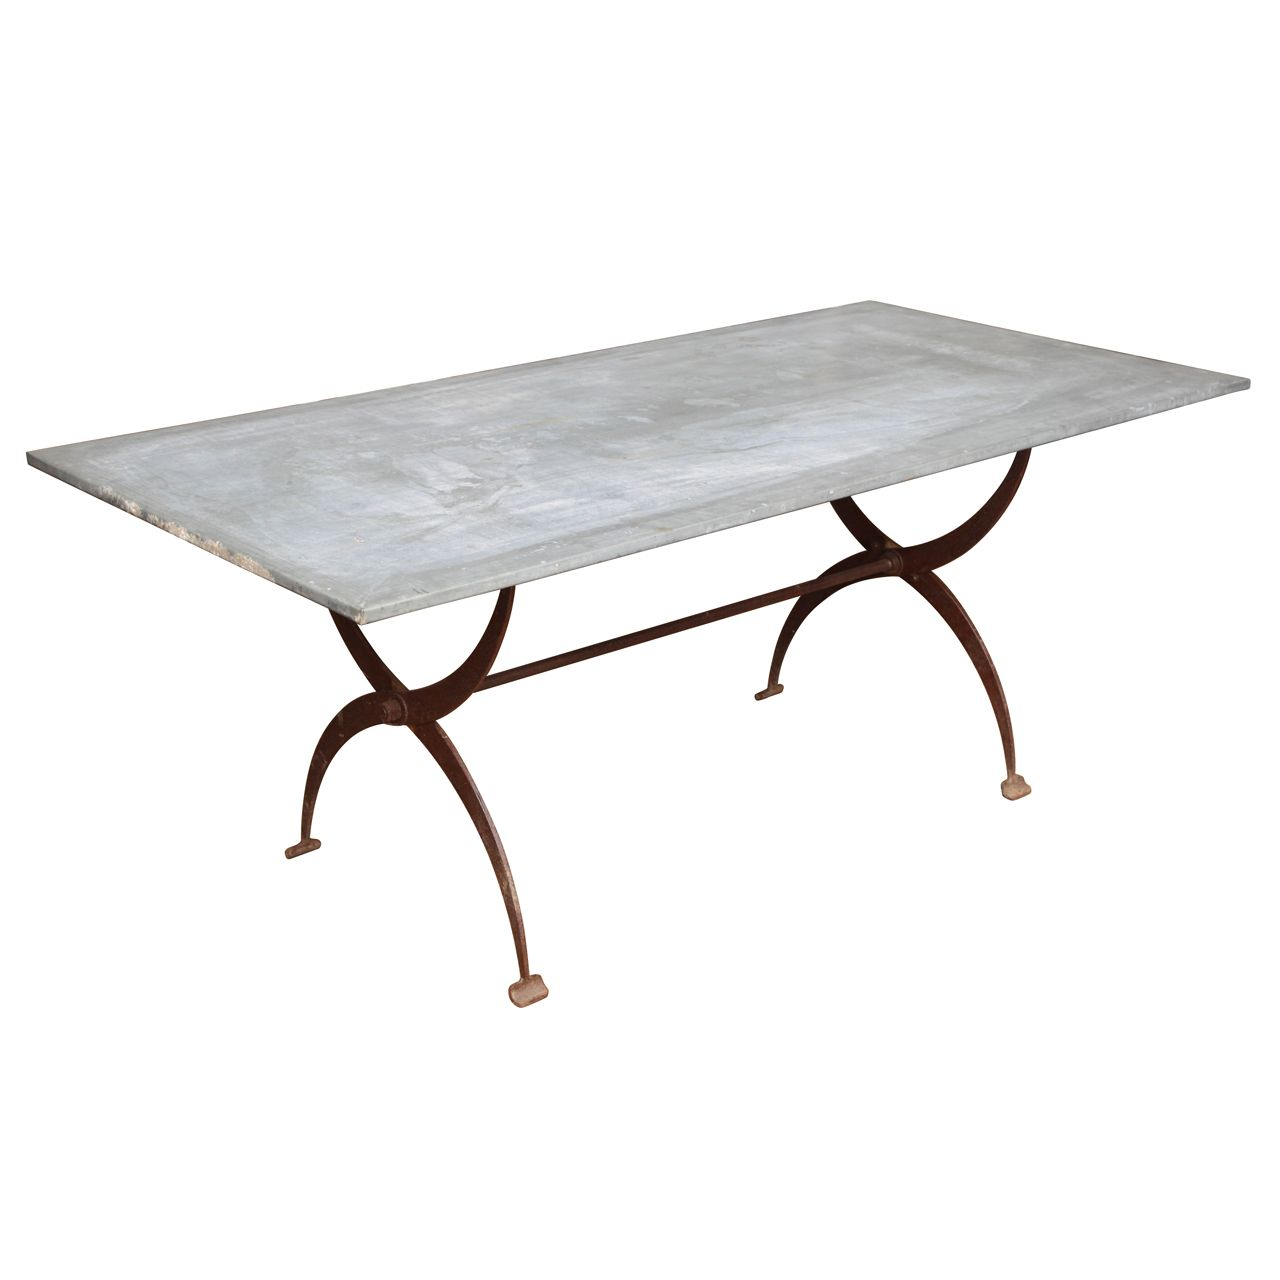 1stdibs Vintage Zinc Top Table Metal Dining Table Dining Table Metal Base Dining Table